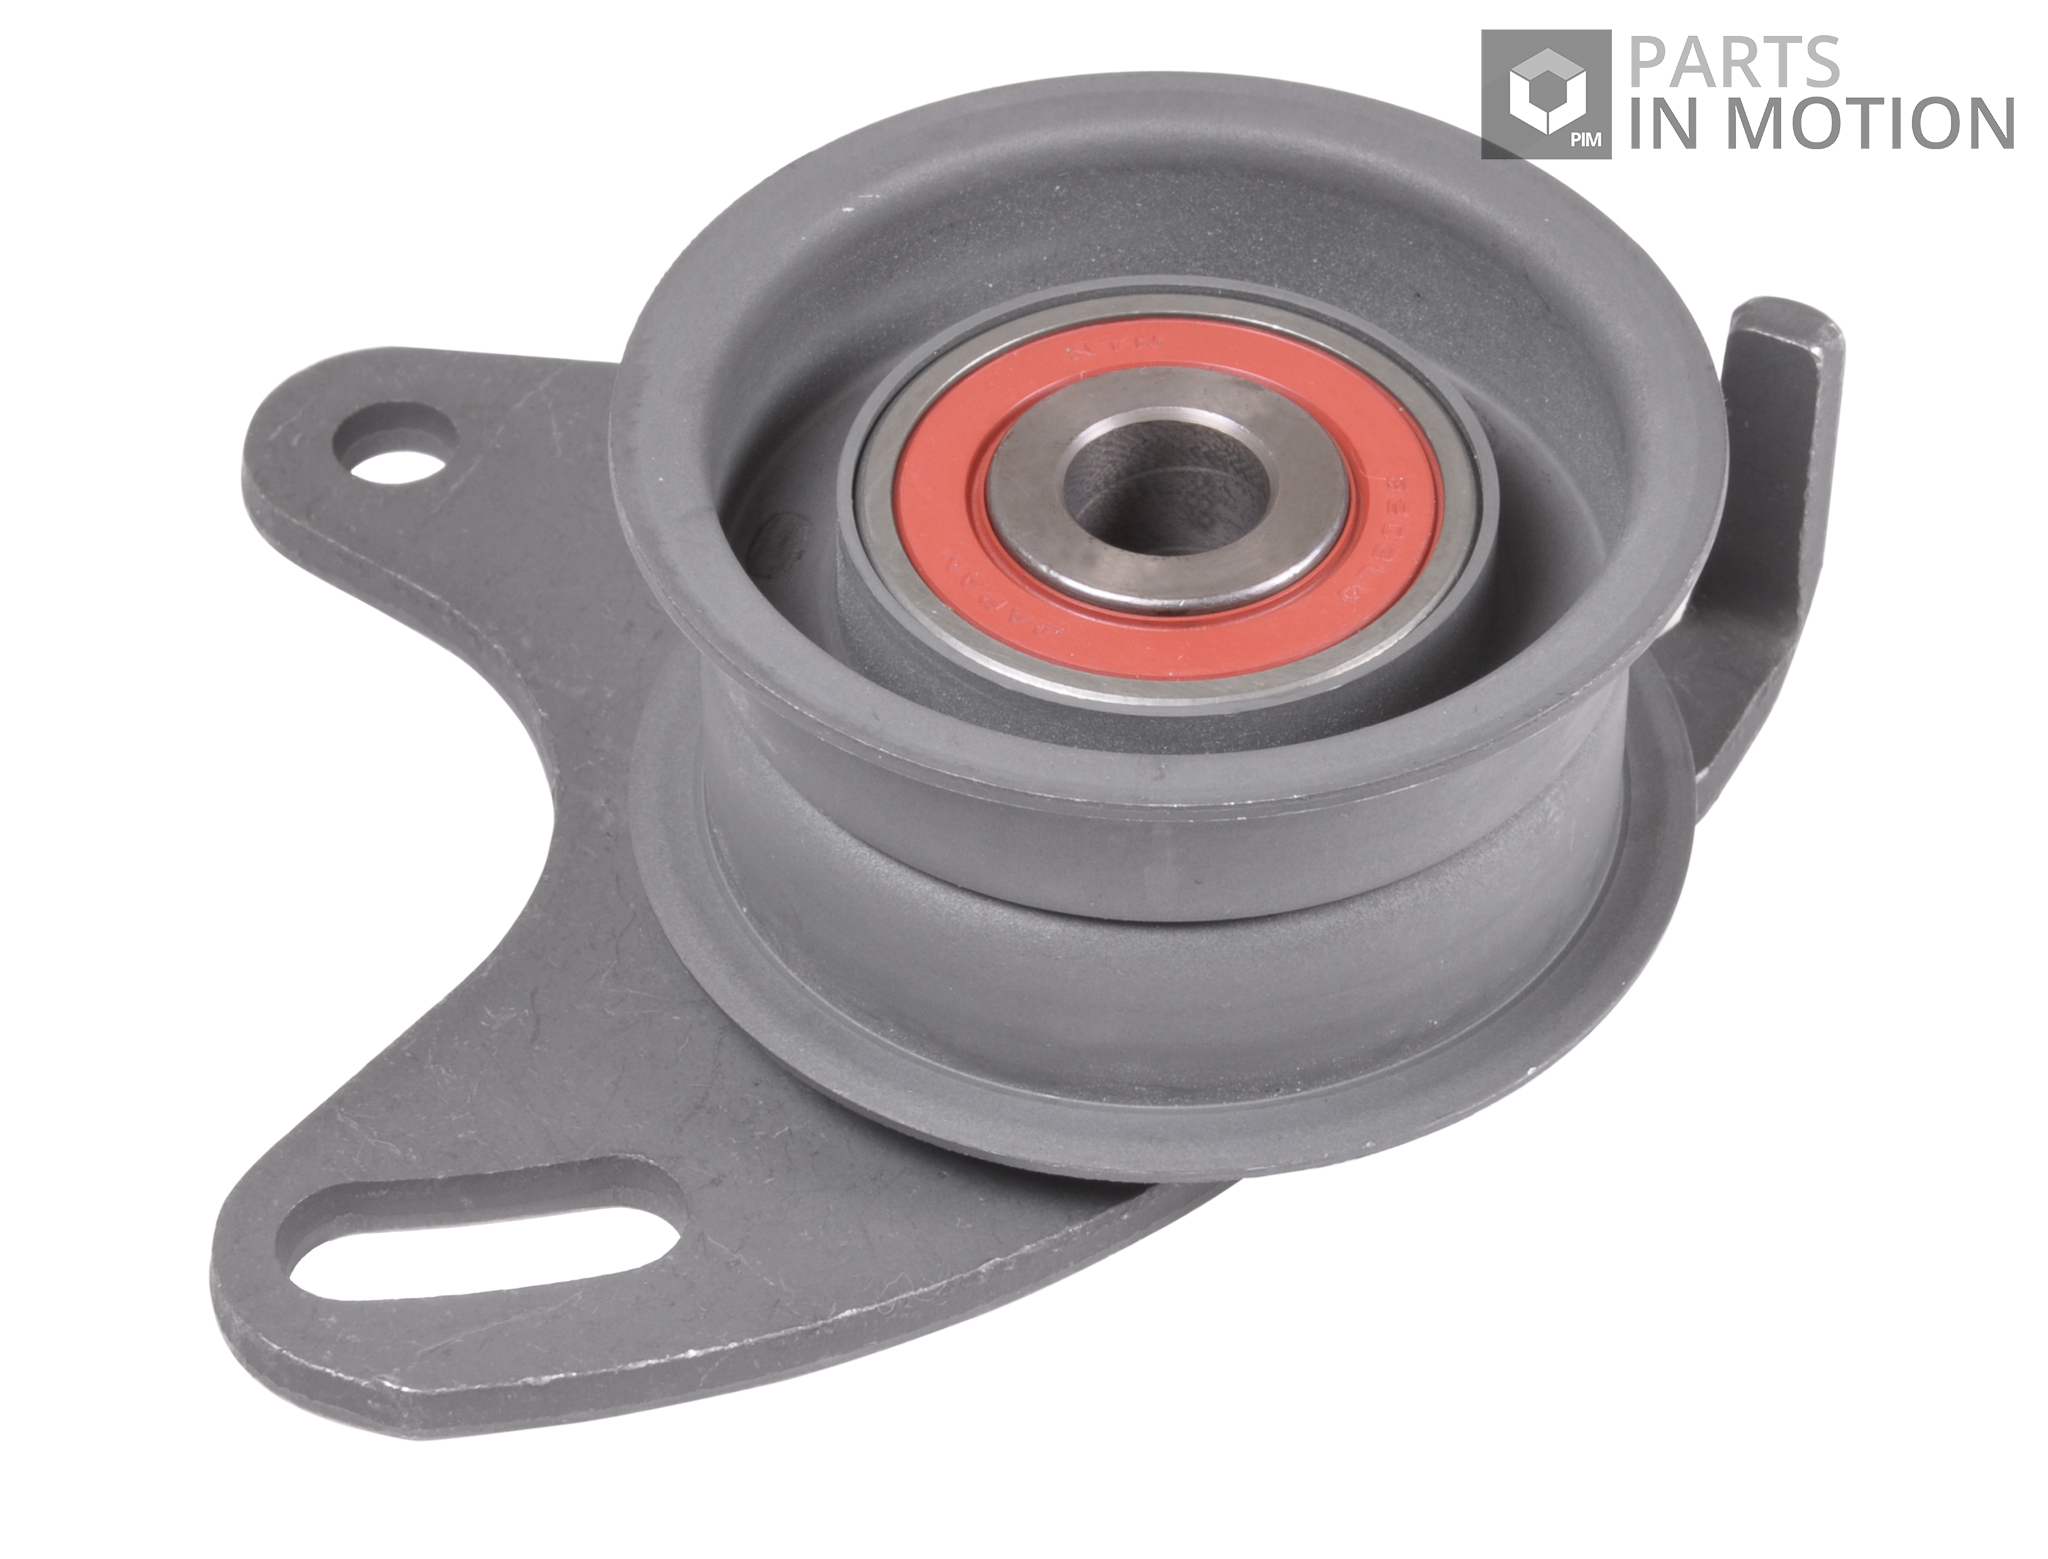 Timing Belt Tensioner Fits Hyundai Terracan 25d 01 To 06 D4bh Adl 2001 Mitsubishi Montero Image Is Loading 2 5d